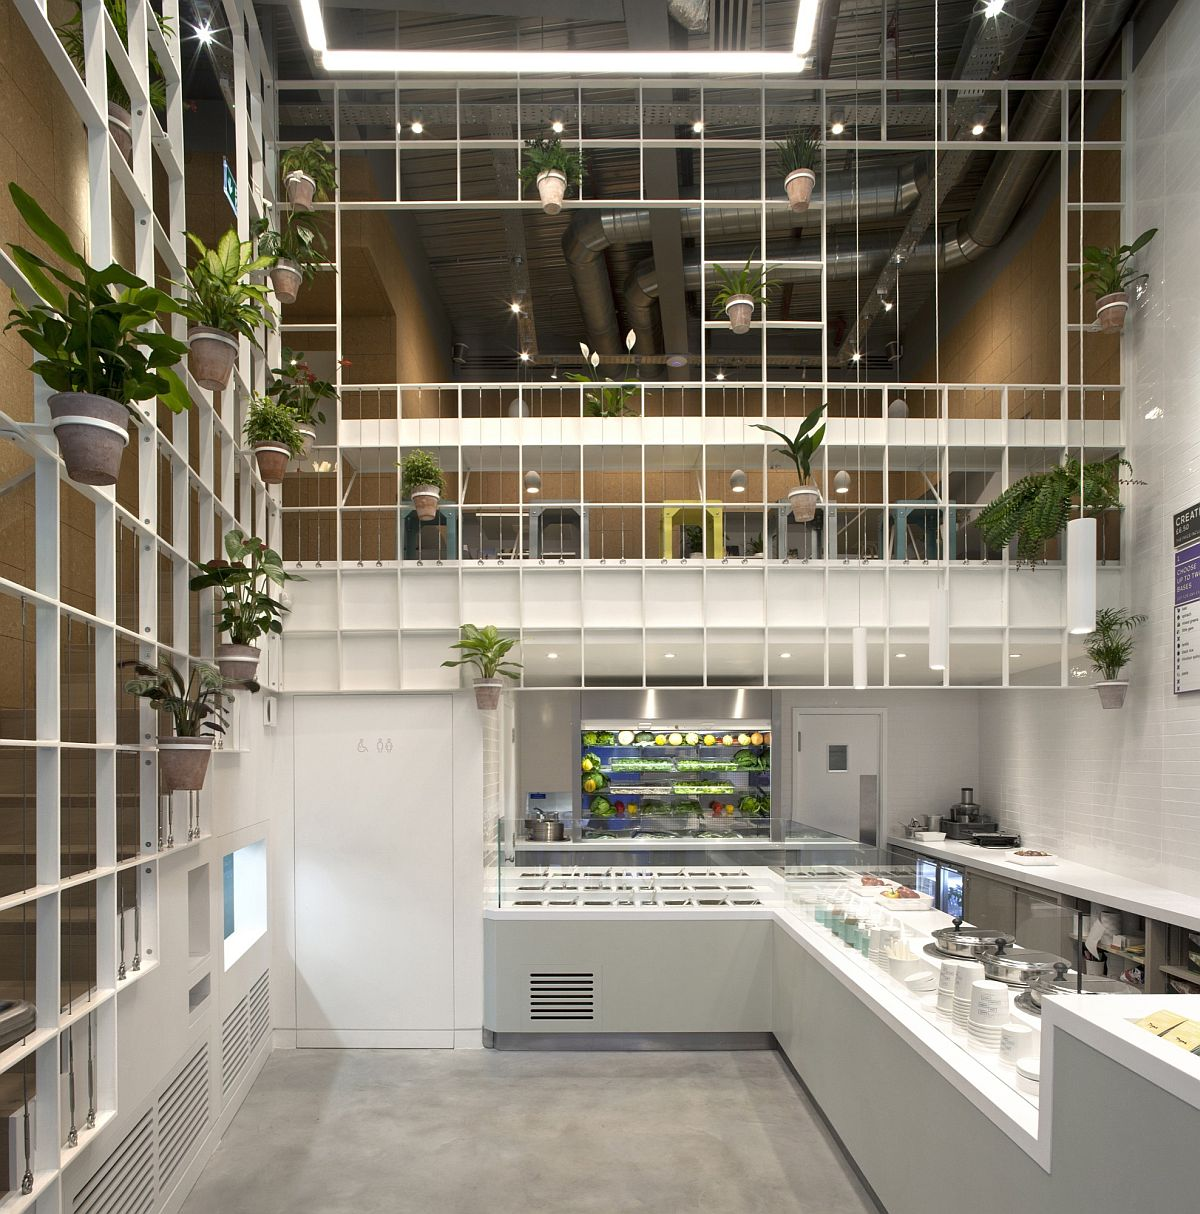 Creative salad and slow food café in London Custom Metallic Grid Brings a Vibrant Green Display to This London Café